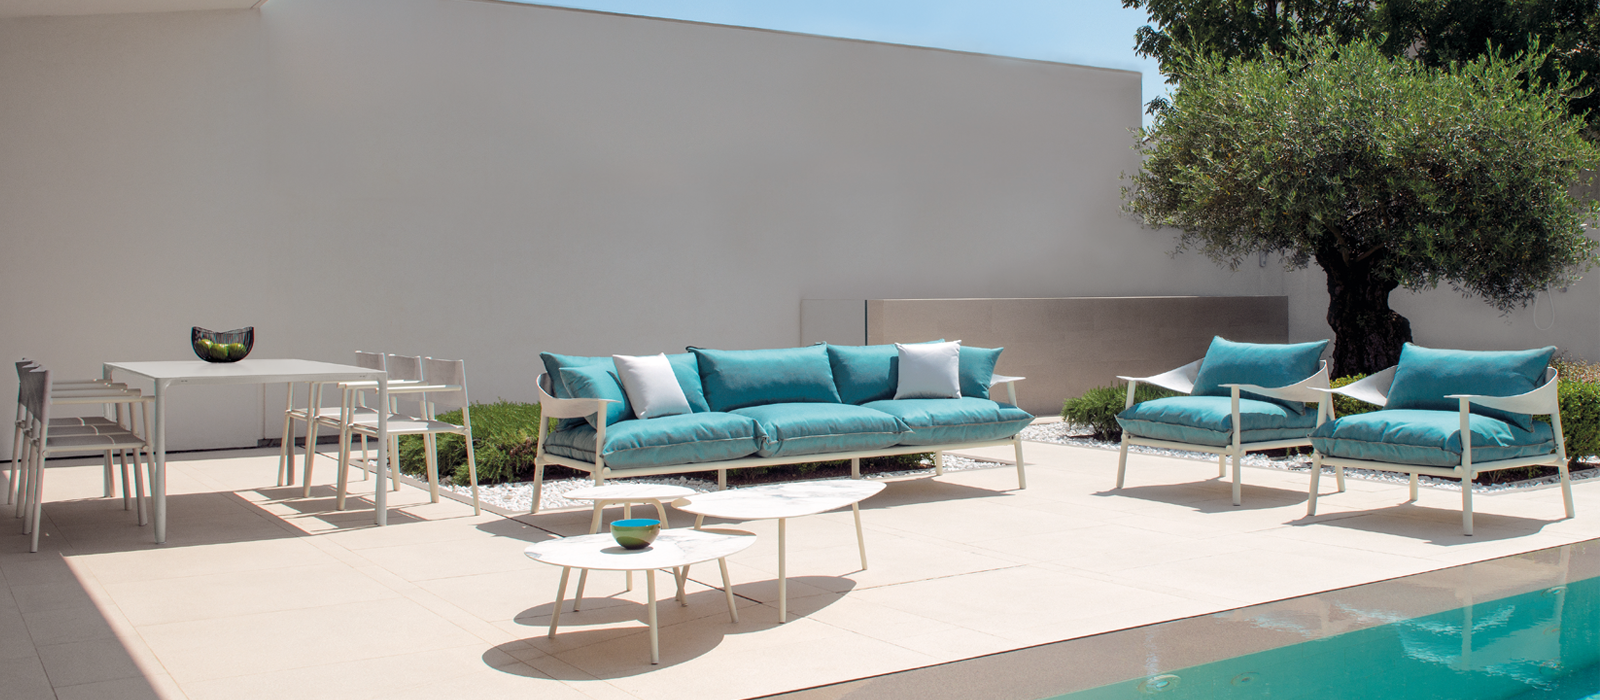 The Terramare Collection is characterized by its attractive shapes and large dimensions allowing for a cozy and personal setting both indoors and outdoors.